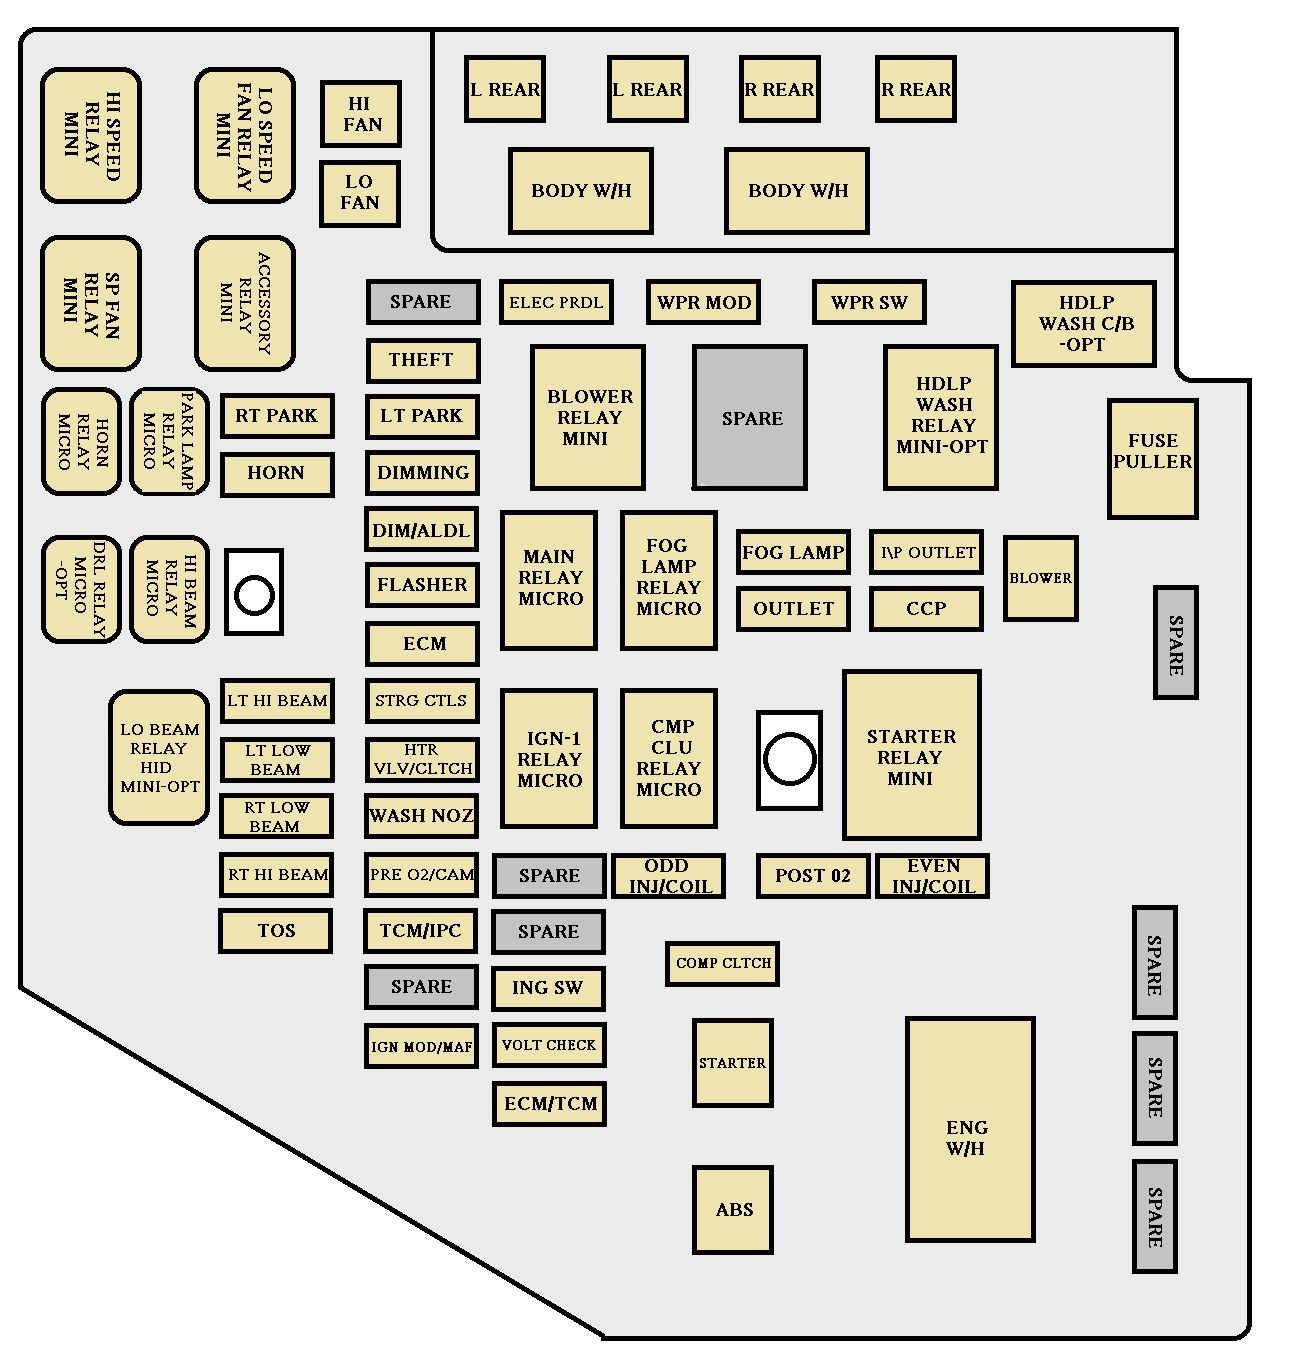 fuse box in cadillac cts wiring diagram forwardcadillac cts rear fuse box wiring diagrams mon fuse [ 1290 x 1371 Pixel ]